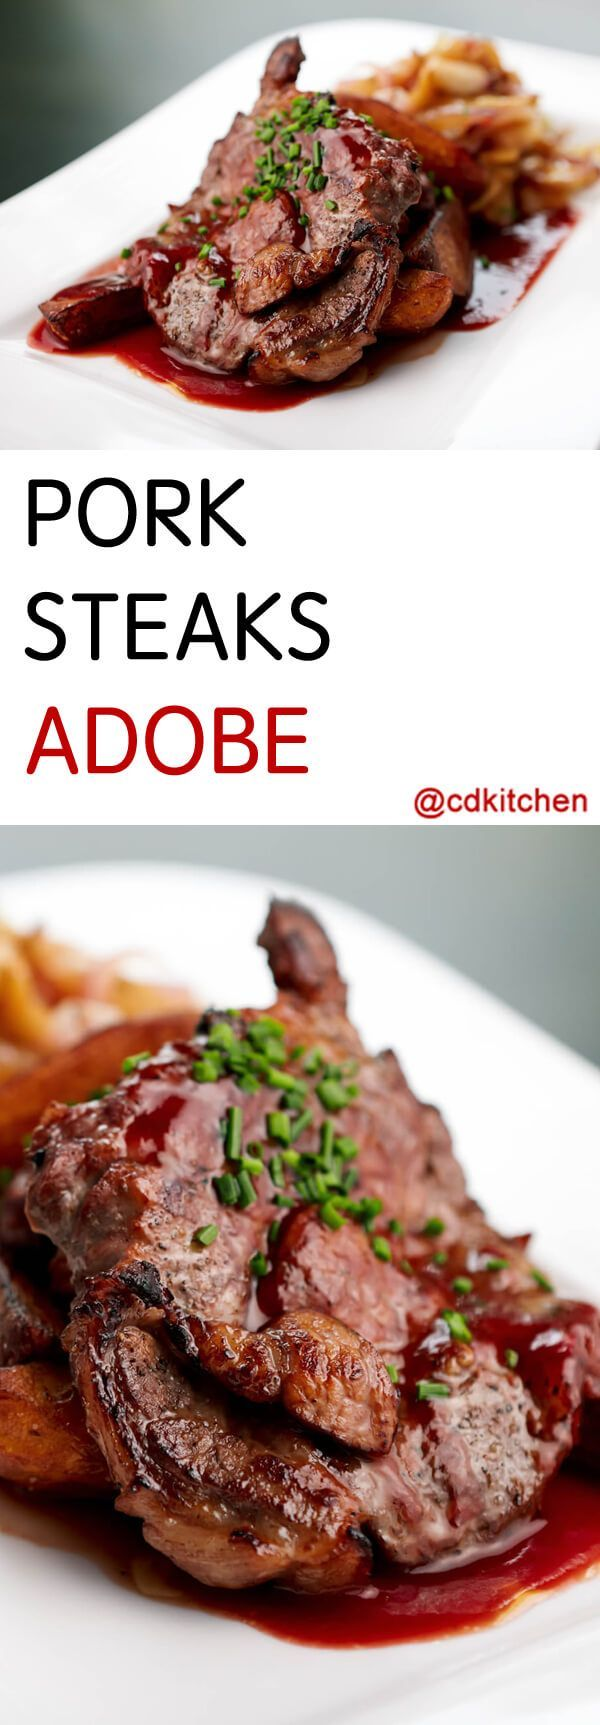 Pork Steaks Adobe - Pork shoulder steaks are simmered in a tangy tomato sauce for ultimate flavor.| CDKitchen.com